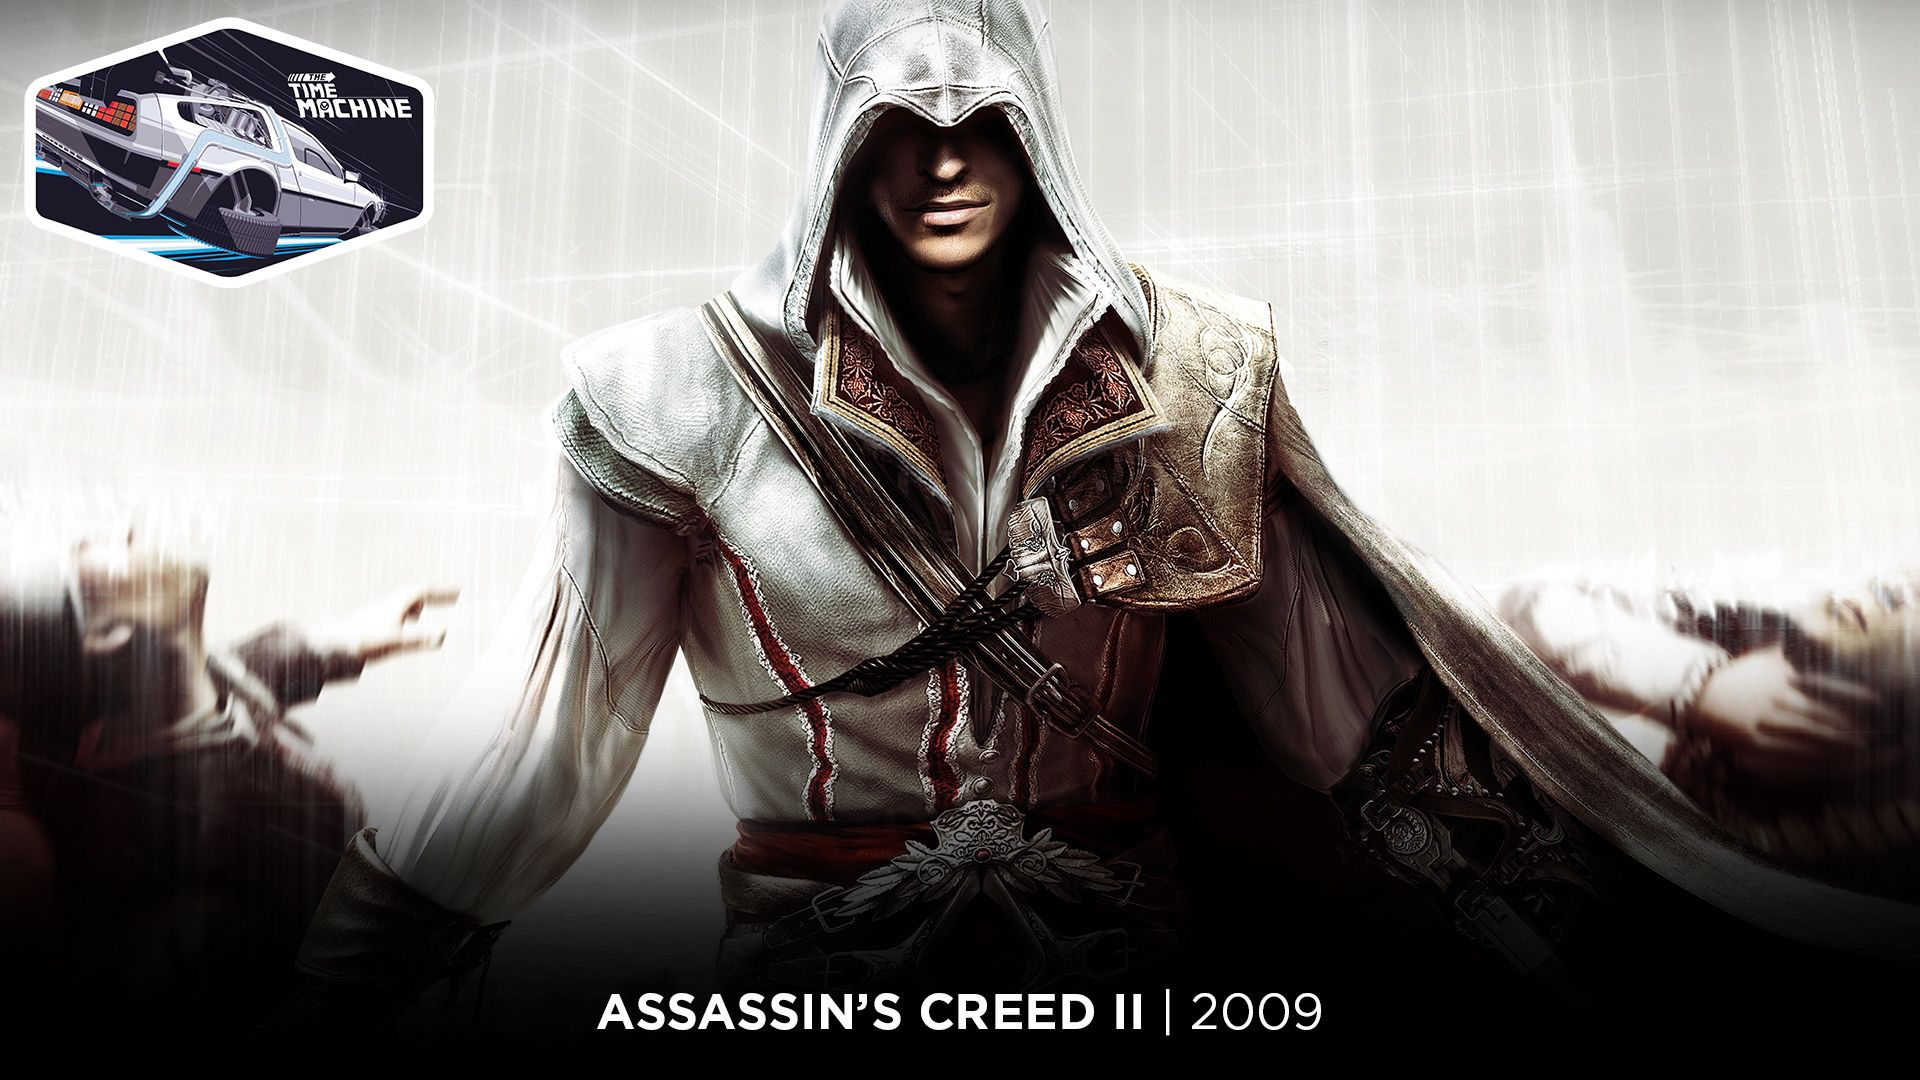 The Time Machine - Assassin's Creed